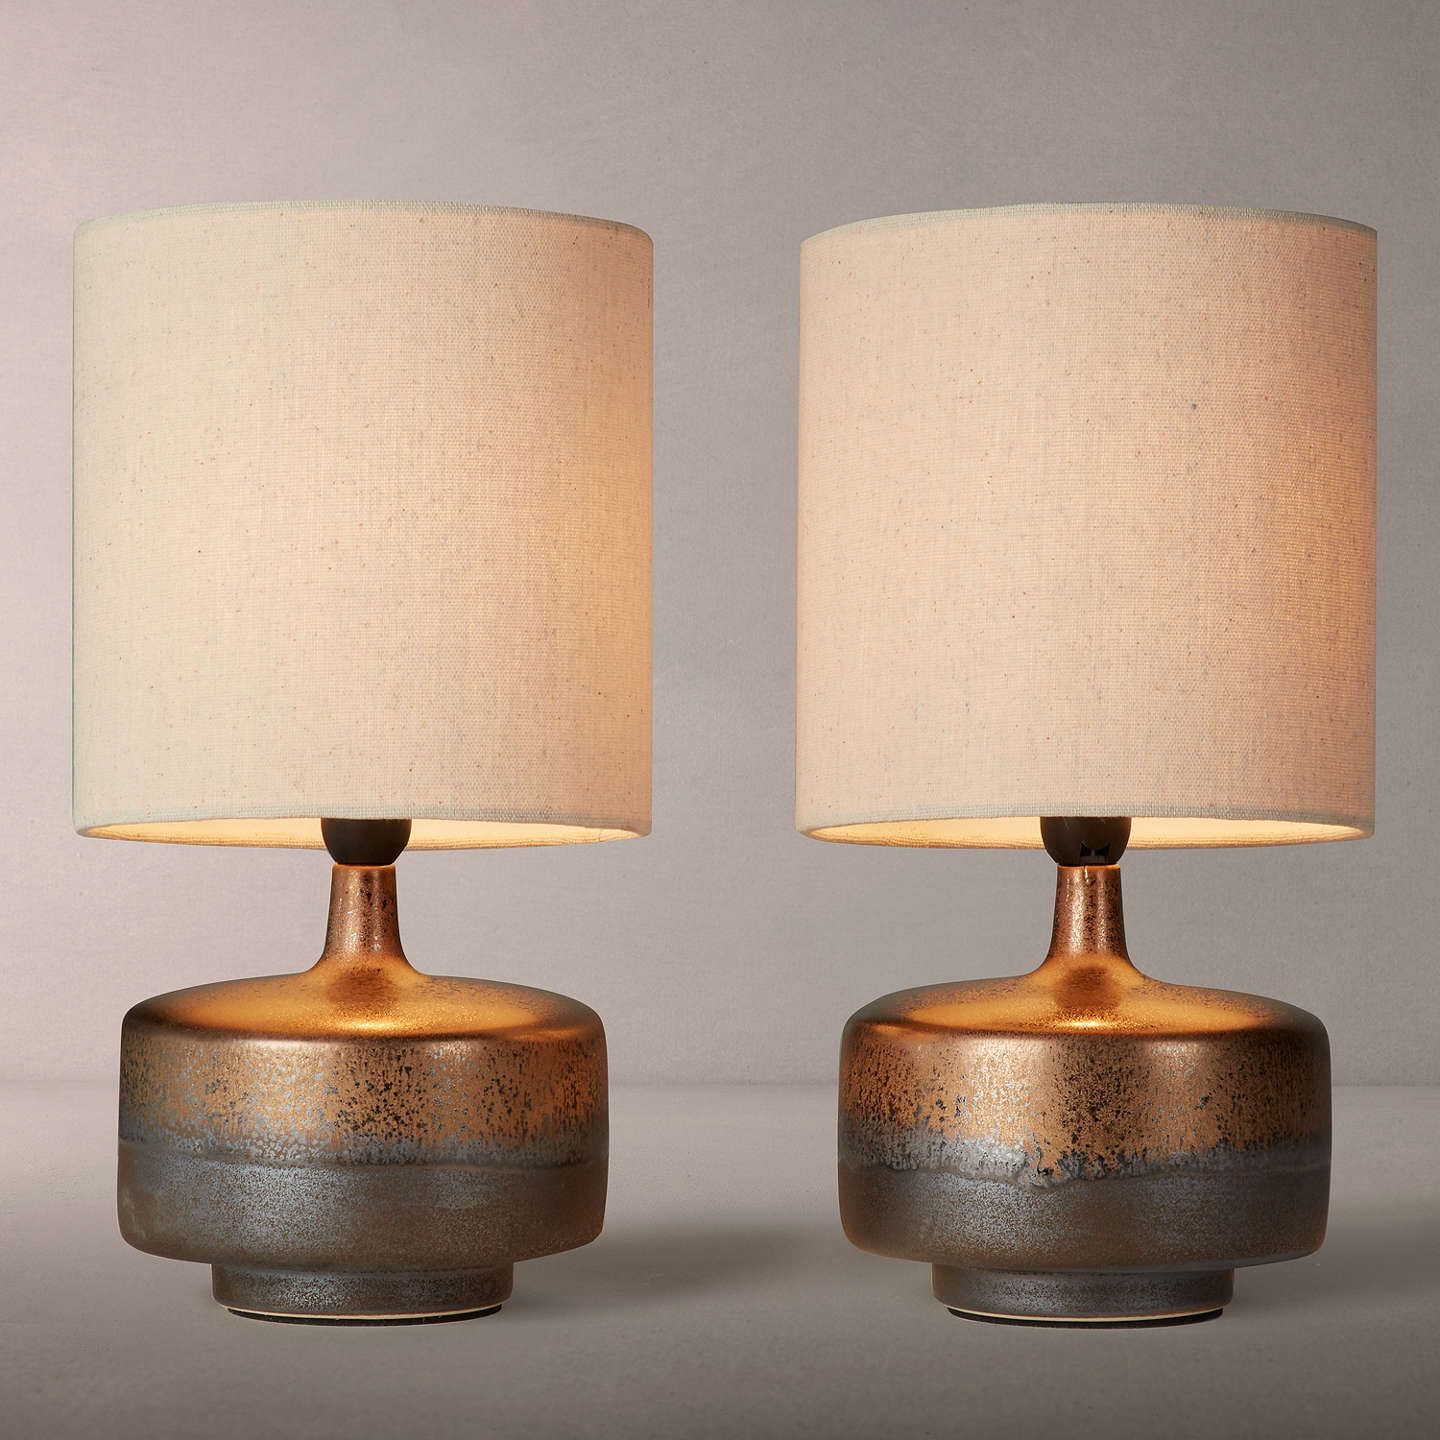 John Lewis Partners Delaney Metallic Glaze Ceramic Table Lamp Set Of 2 Metal Table Lamps Side Table Lamps Black Table Lamps